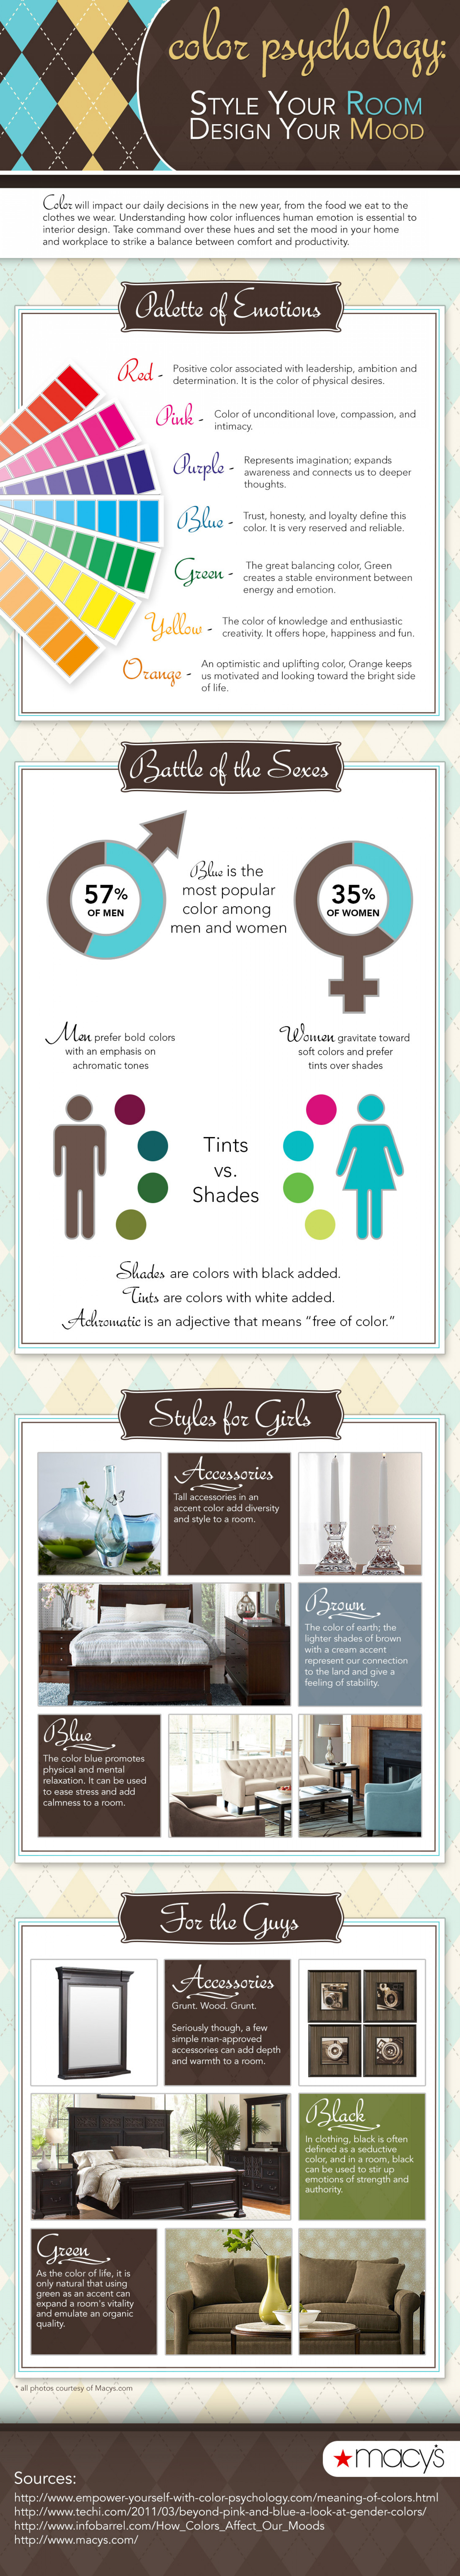 Color Psychology: Style Your Room, Design Your Mood Infographic